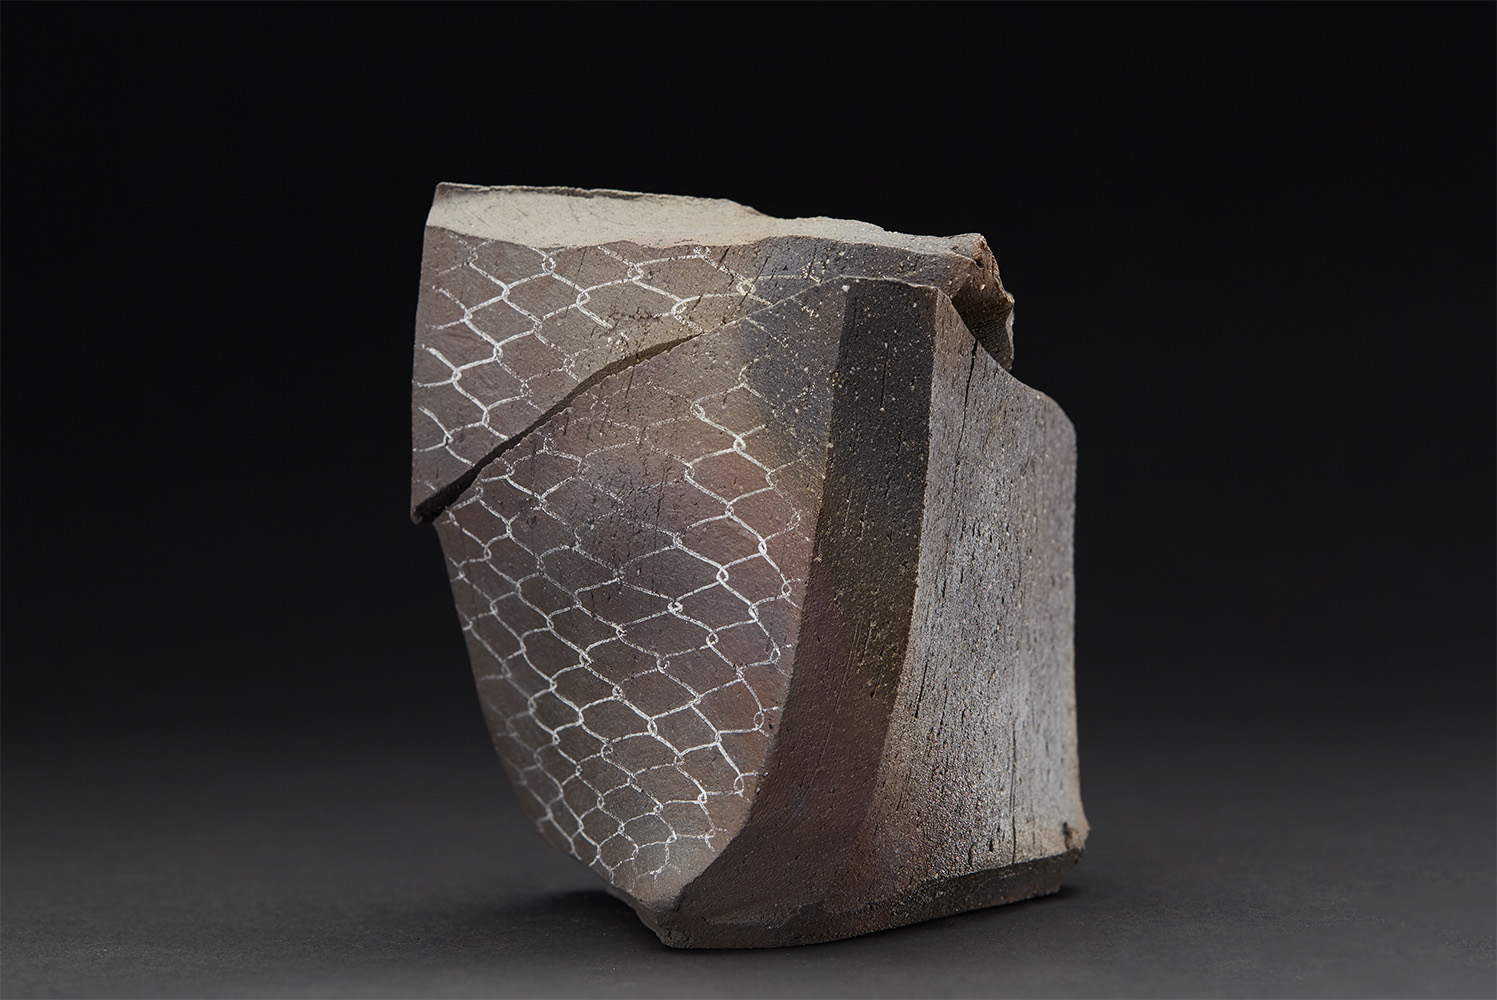 Shozo Michikawa    Tanka Wave Pot  , n.d. Ceramic 4.61 x 4.13 x 4.13 inches 11.7 x 10.5 x 10.5 cm SMi 27